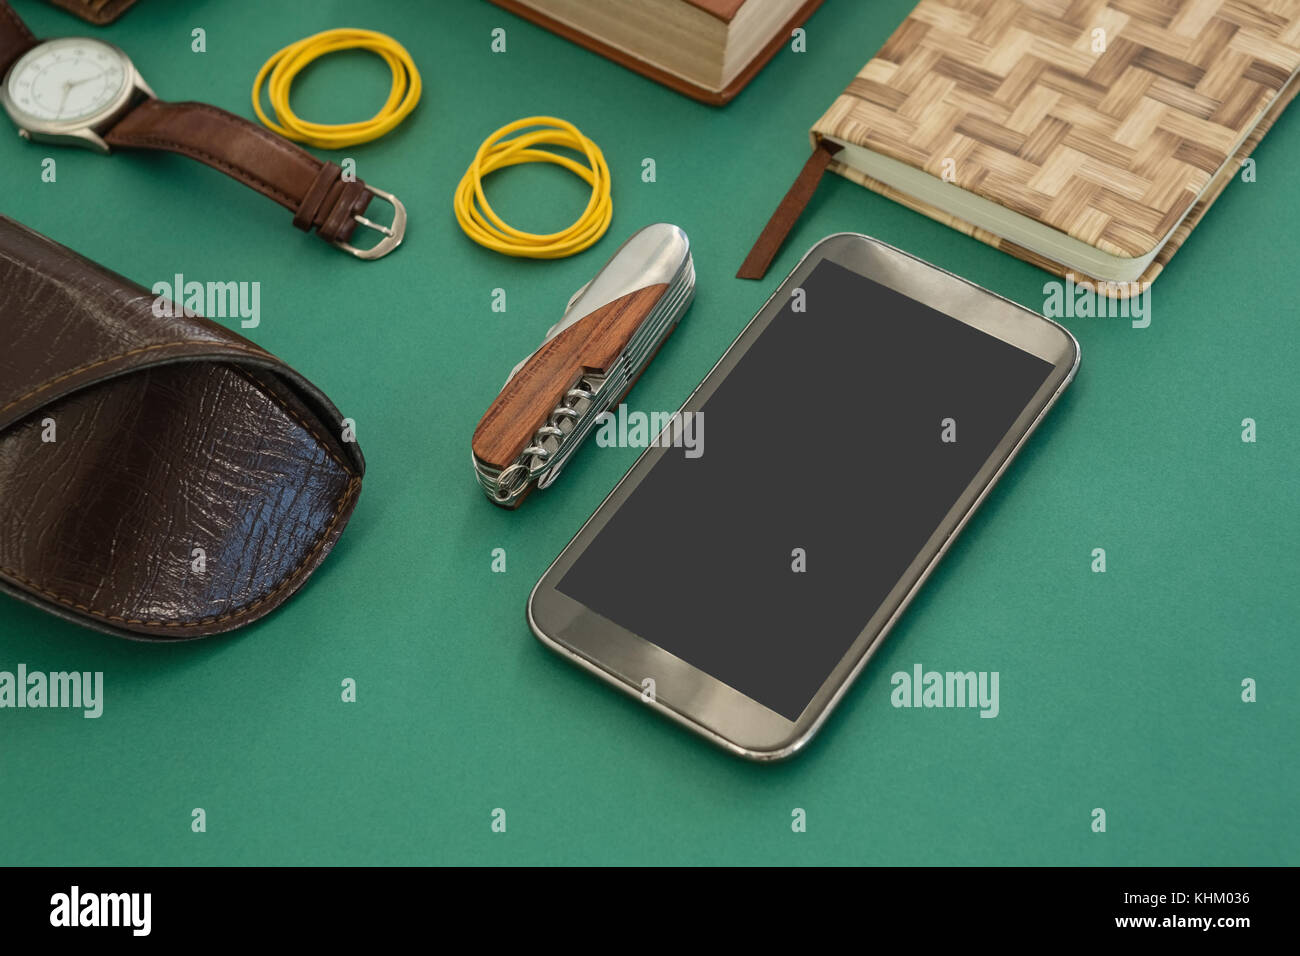 Close-up of organizer, wristwatch, pocketknife, mobile phone and sunglasses case on gr - Stock Image